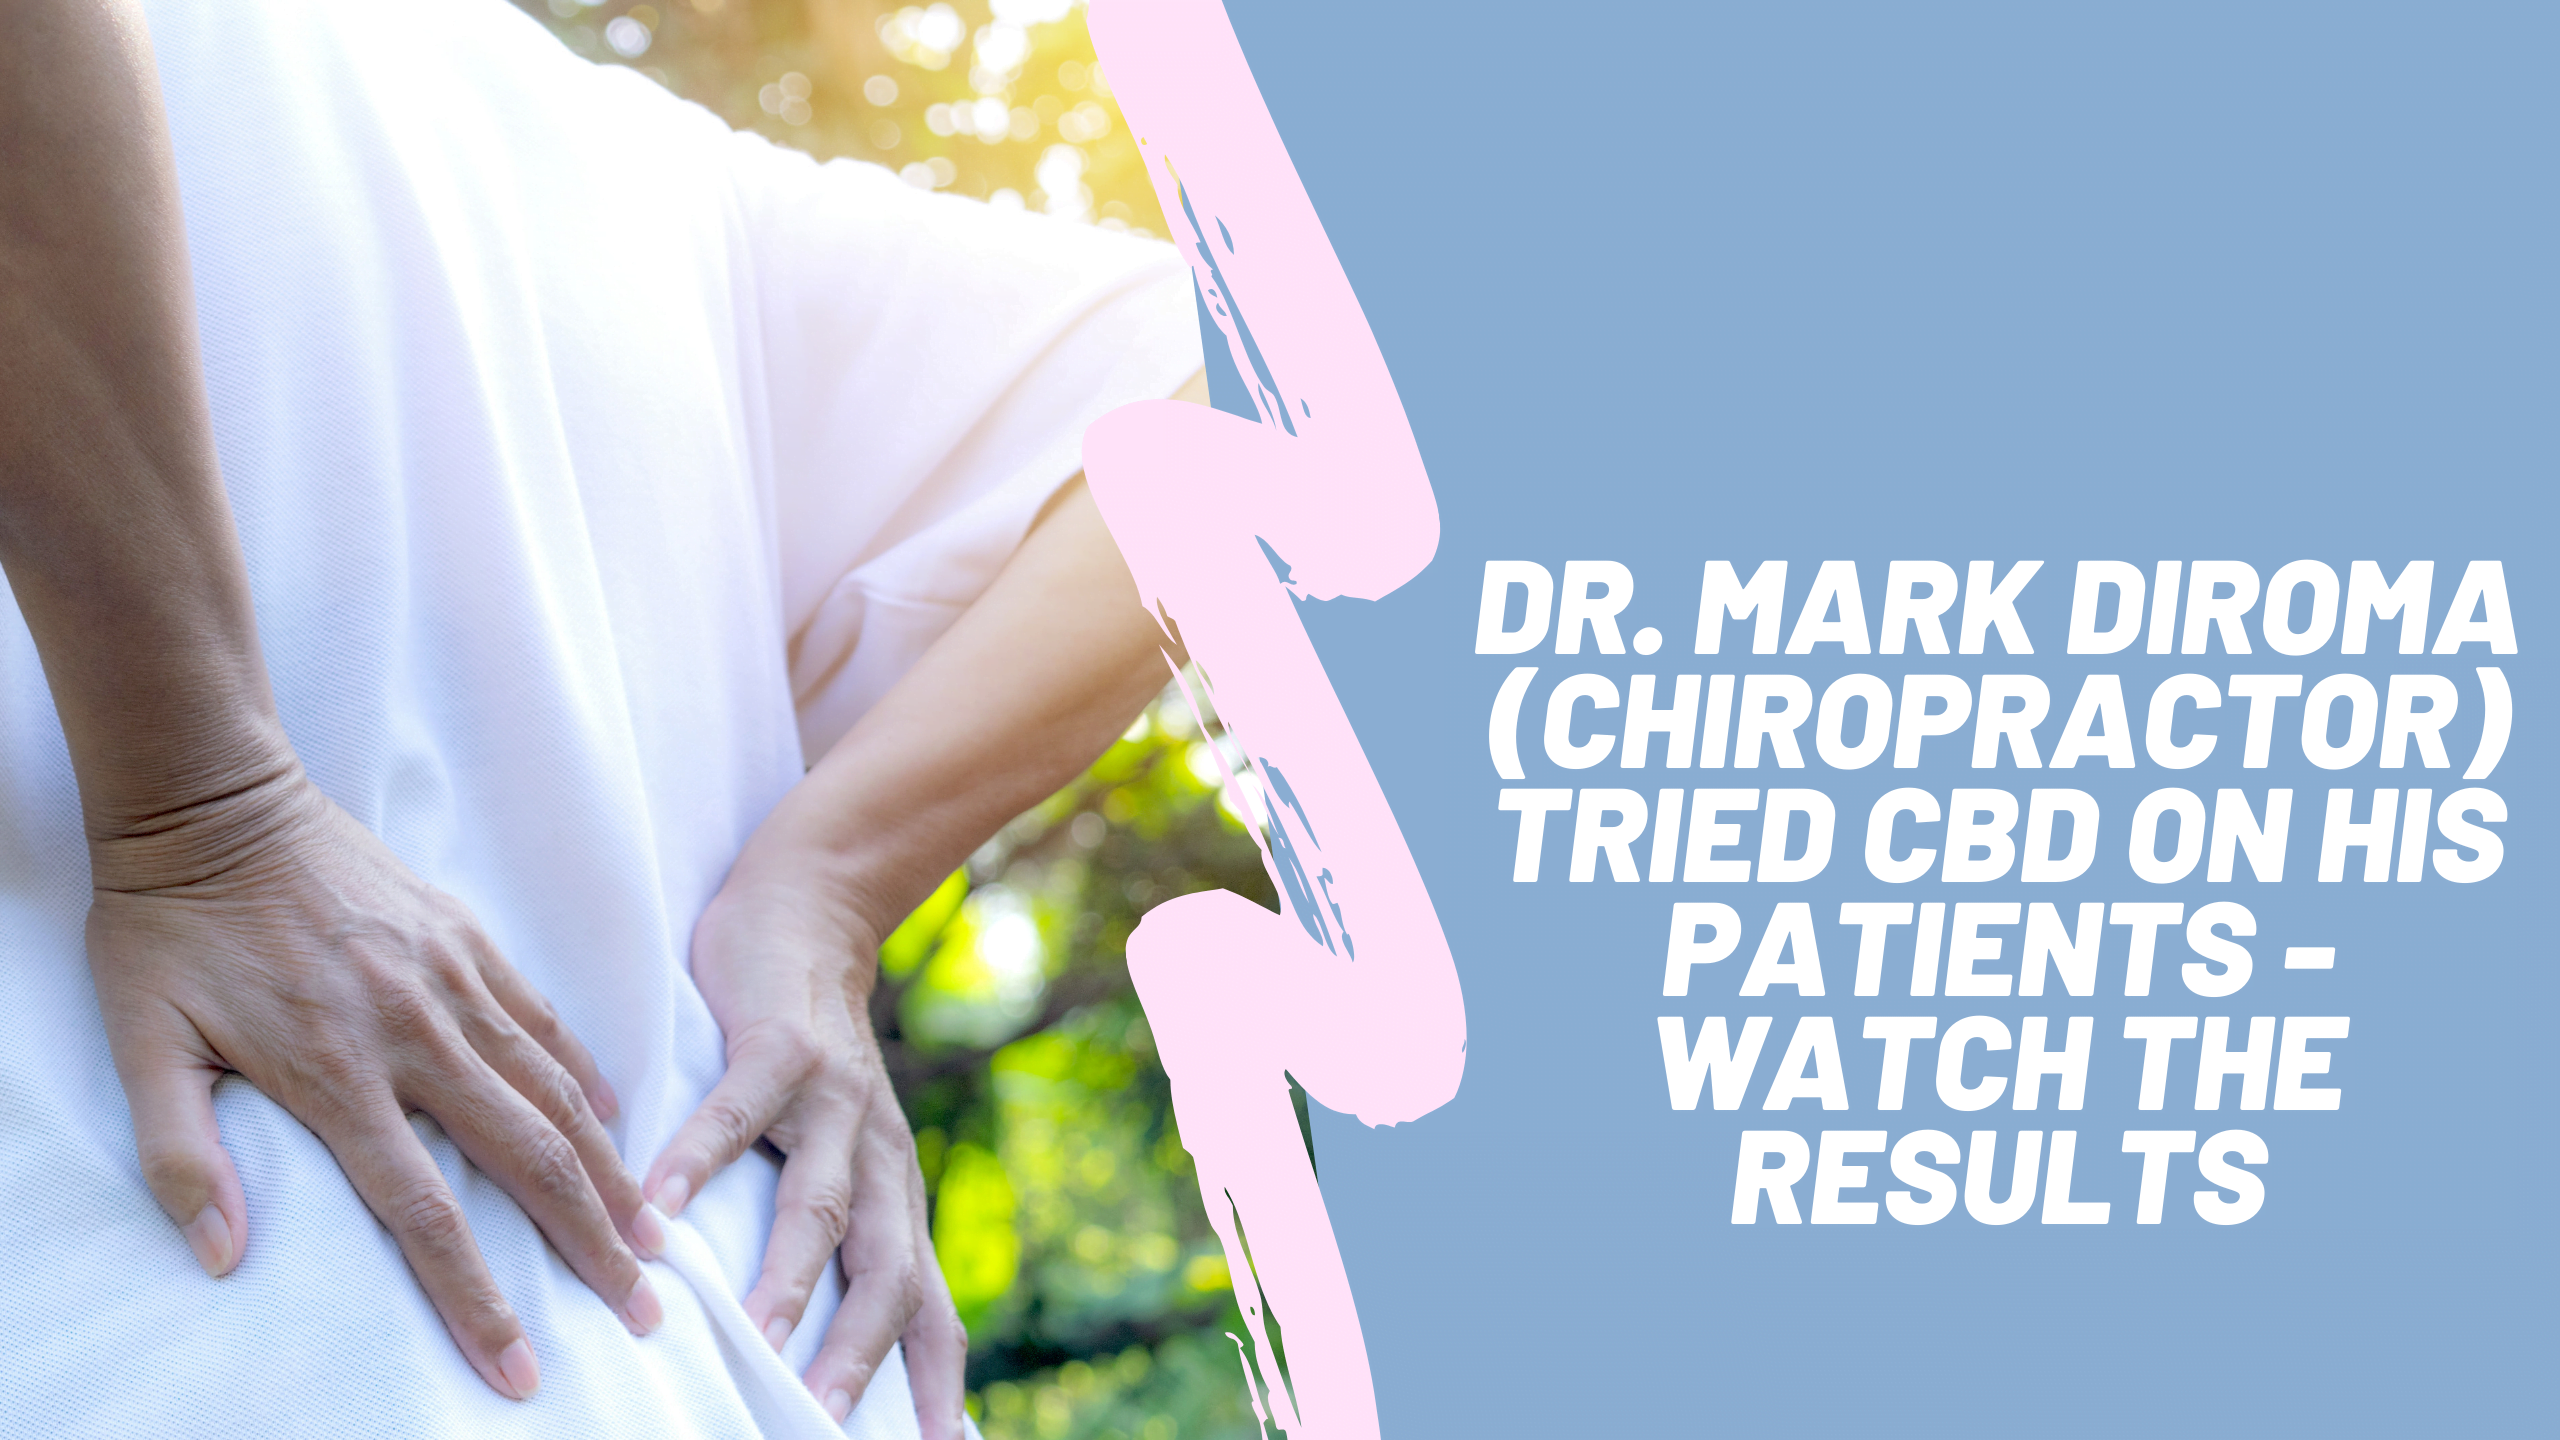 Dr. Mark Diroma (chiropractor) tried CBD on his patients -Watch the results: